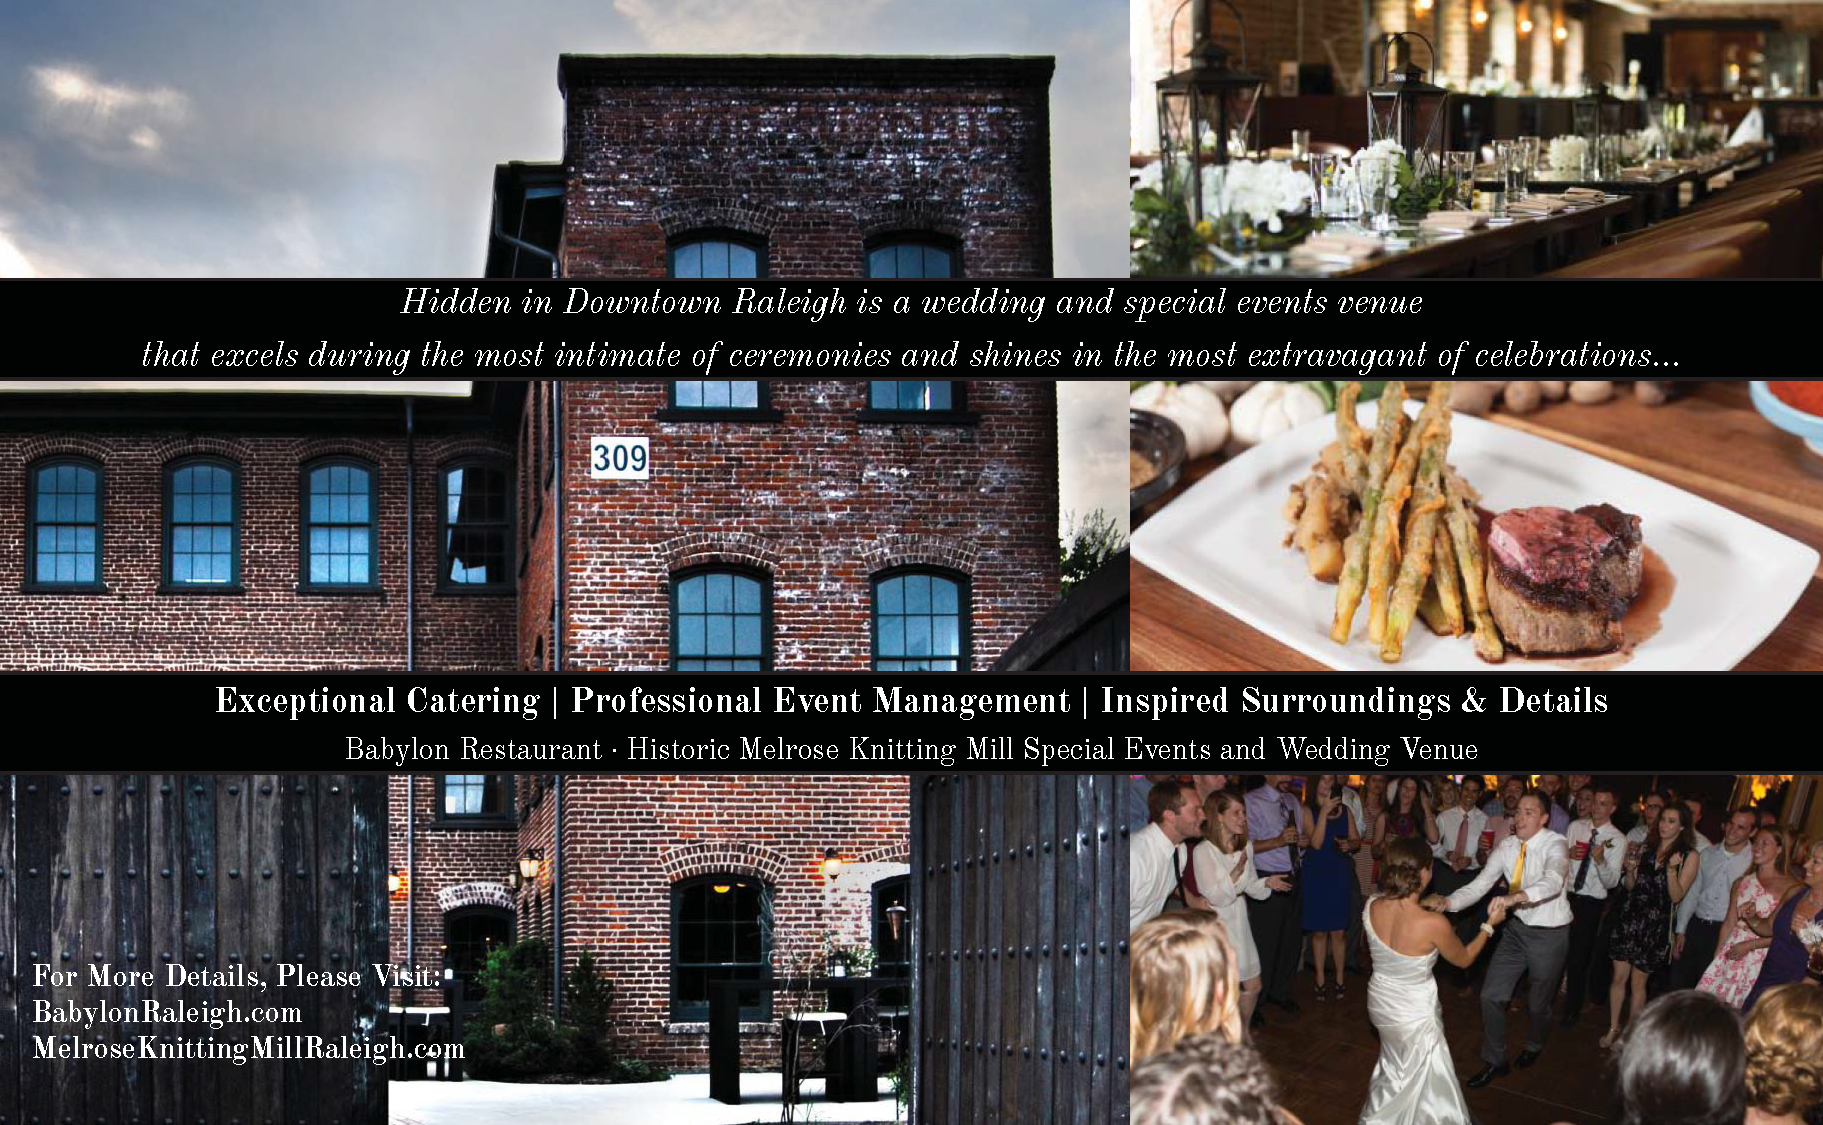 """Print ad designed for Babylon Restaurant to be included in Triangle Downtowner Magazine's """"weddings and special events"""" issue"""